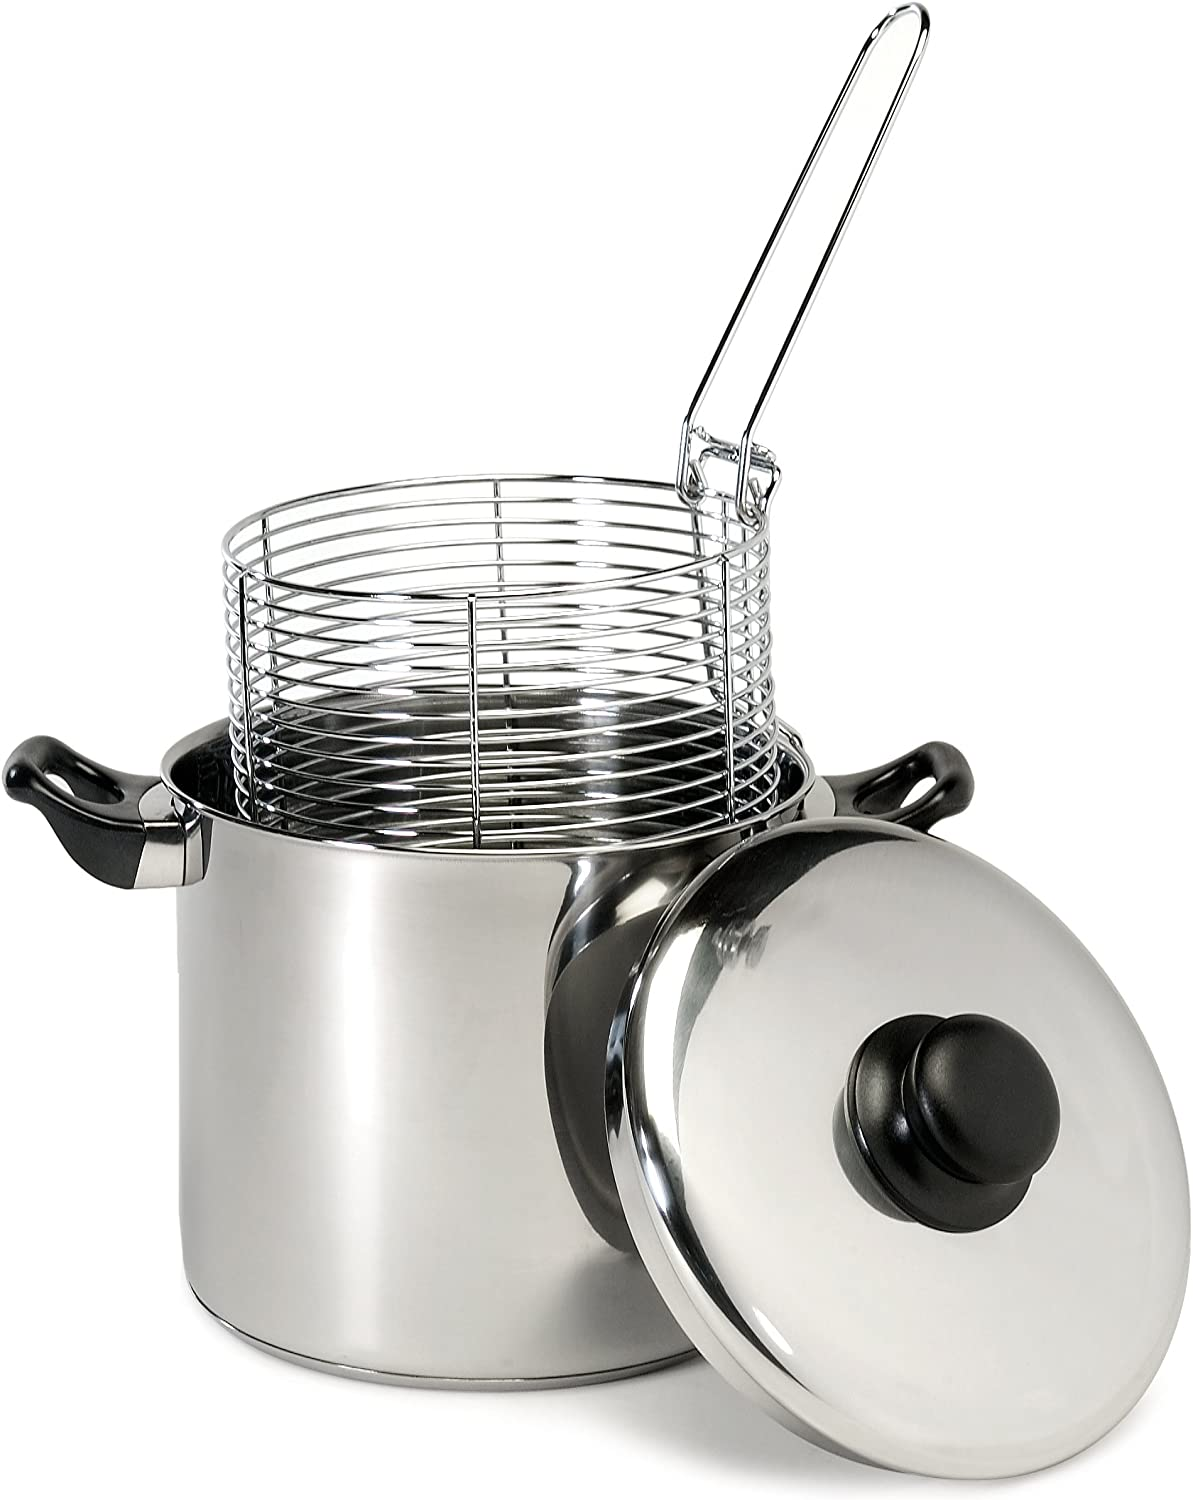 Review of Excelsteel 6 Quart Stainless Steel Stove Top Deep Fryer